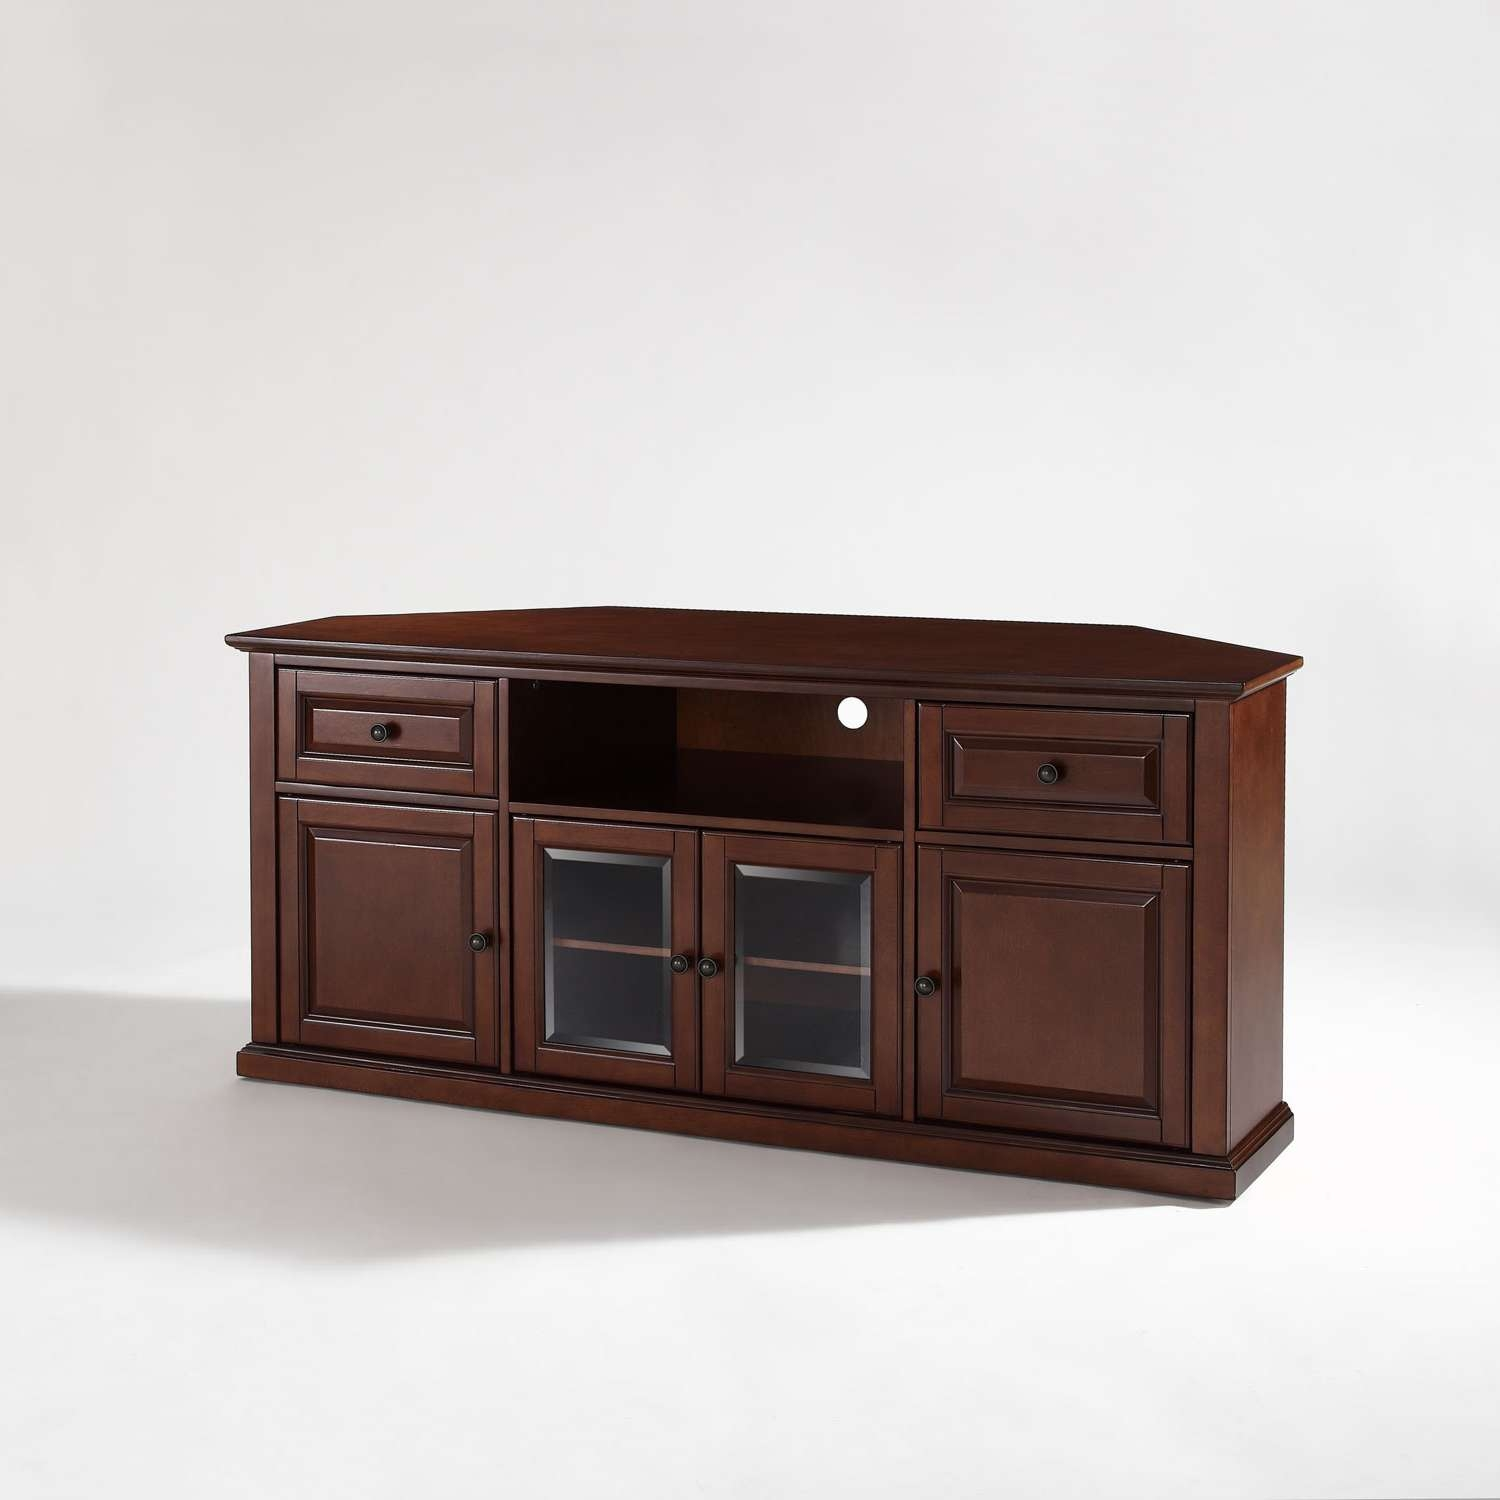 60 Inch Corner Tv Stand In Vintage Mahogany Crosley Furniture Throughout Low Corner Tv Stands (View 3 of 15)